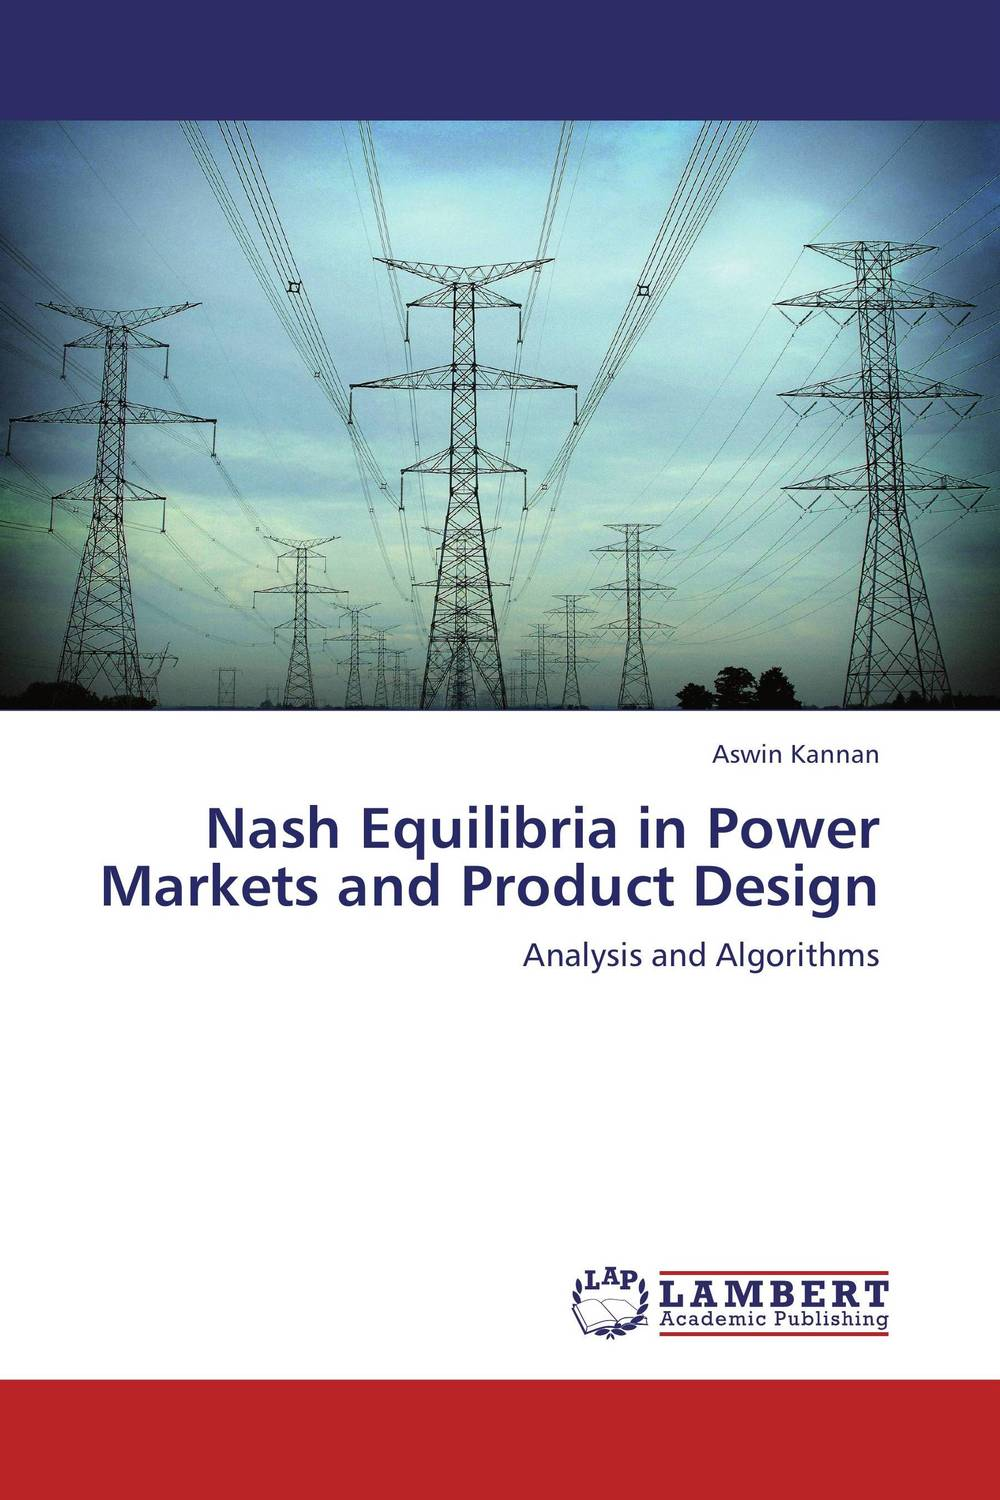 Nash Equilibria in Power Markets and Product Design peter nash effective product control controlling for trading desks